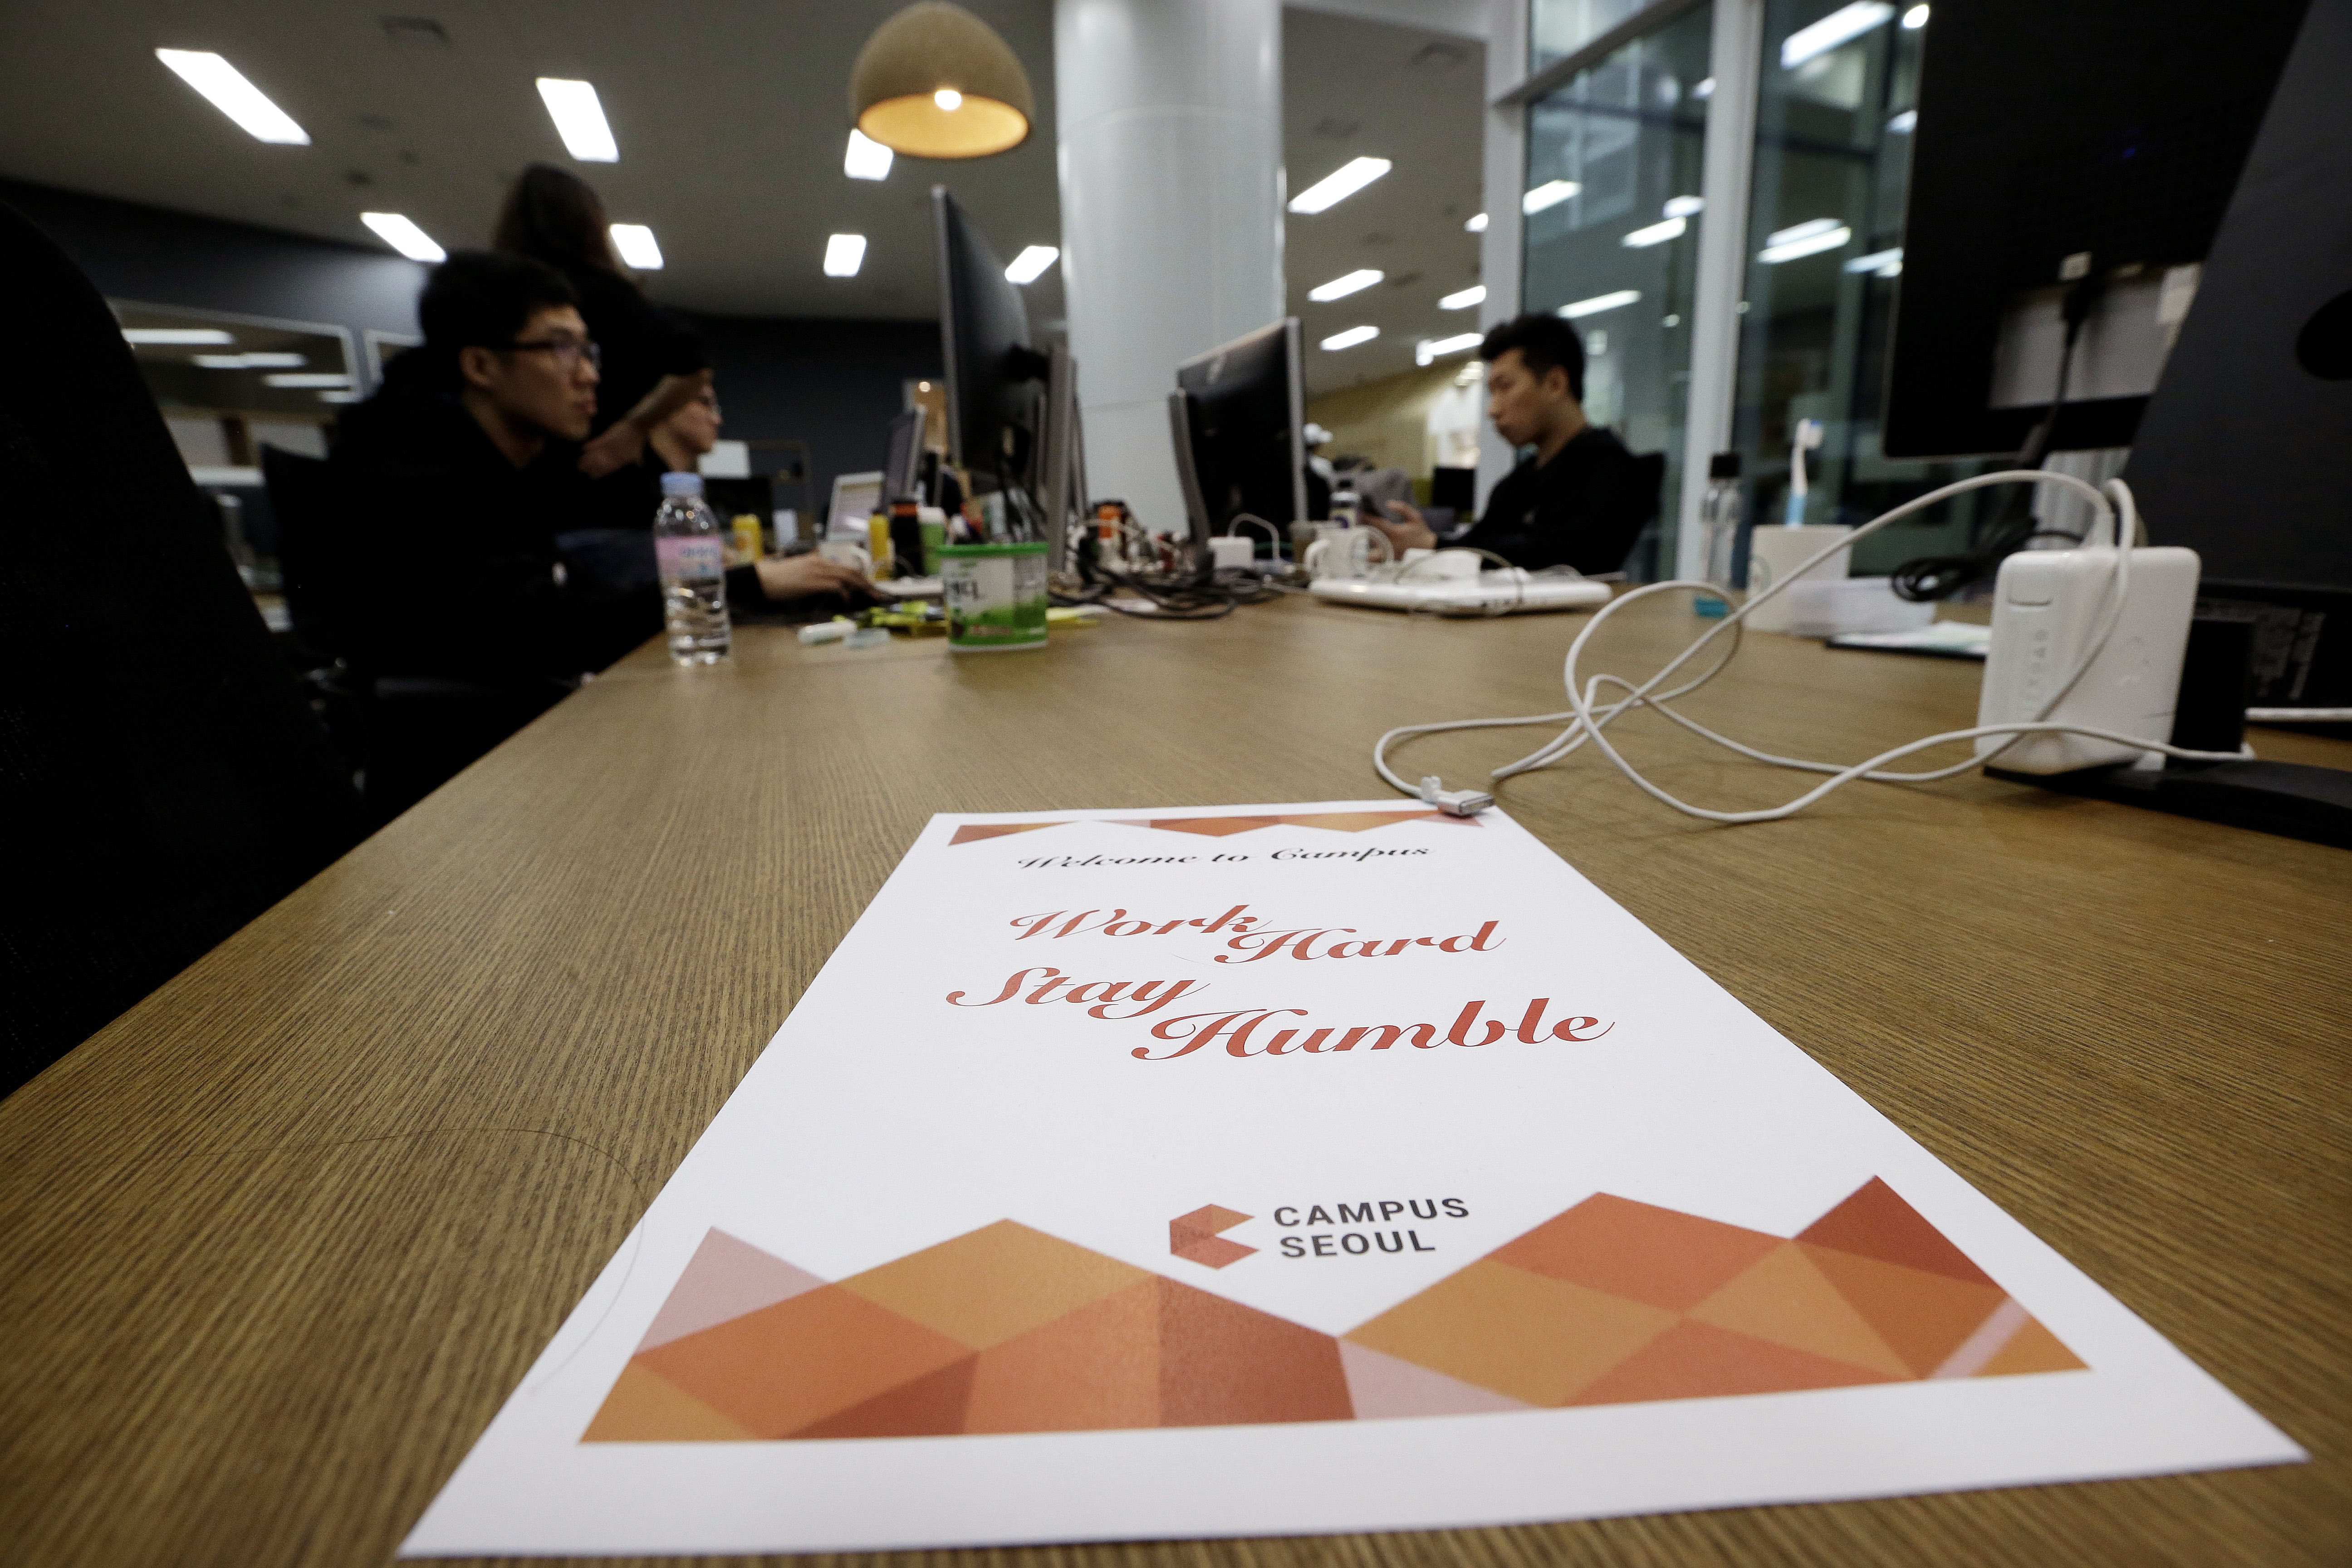 FILE - Employees of Chatting Cat company, a startup and ventures investors, work during a media tour at the Google campus in Seoul, South Korea, May 8, 2015. Seoul is the site of Google's first campus for startups and entrepreneurs in Asia.